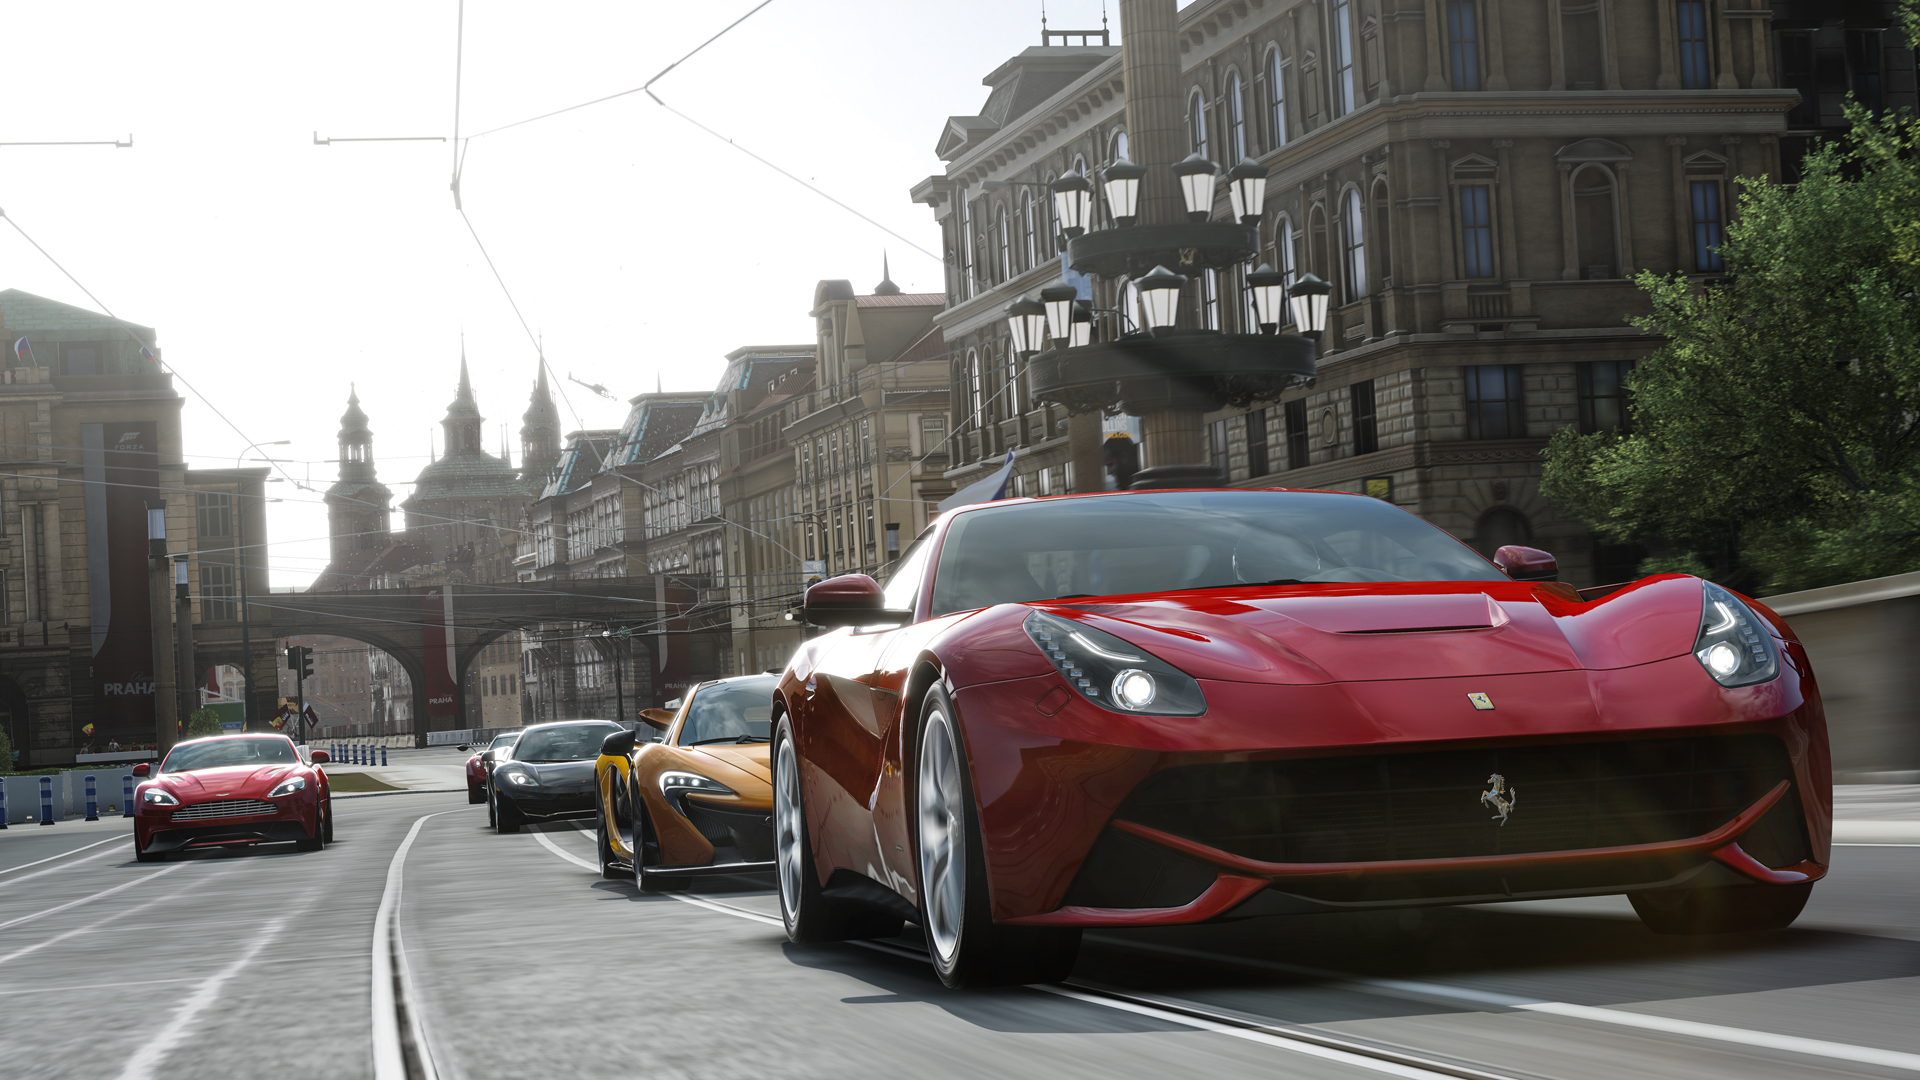 Buy an Xbox One, get Forza 5 for free